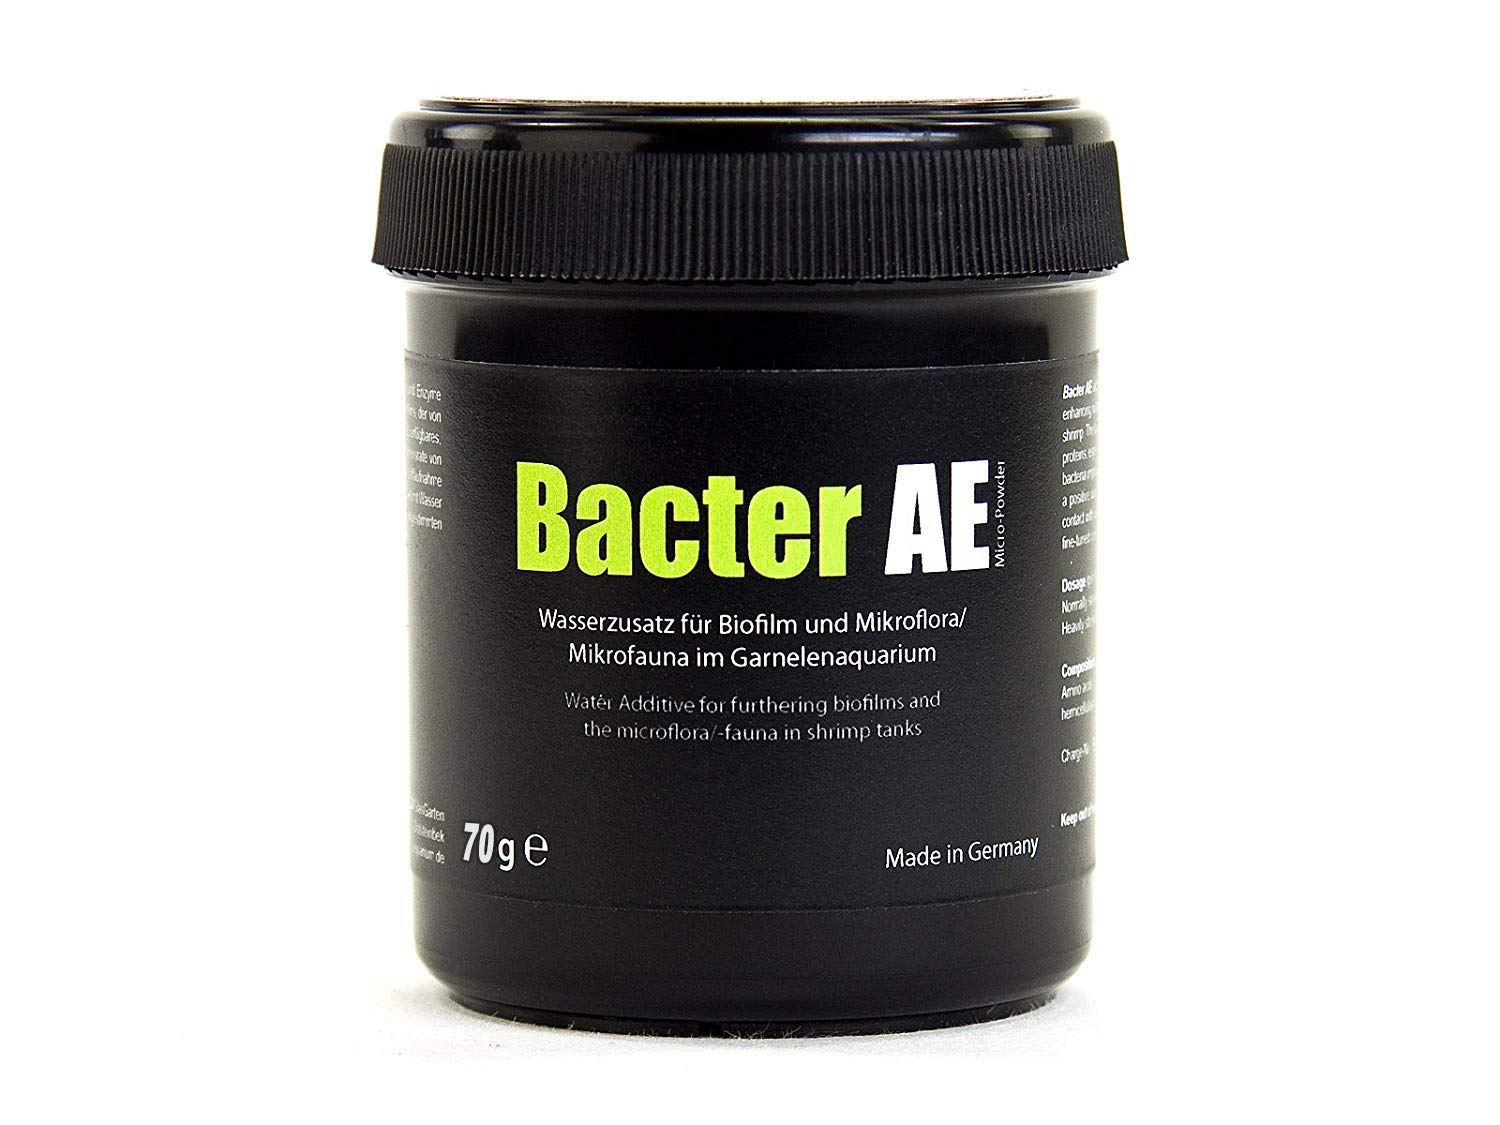 GlasGarten Bacter AE Shrimp Tank Treatment